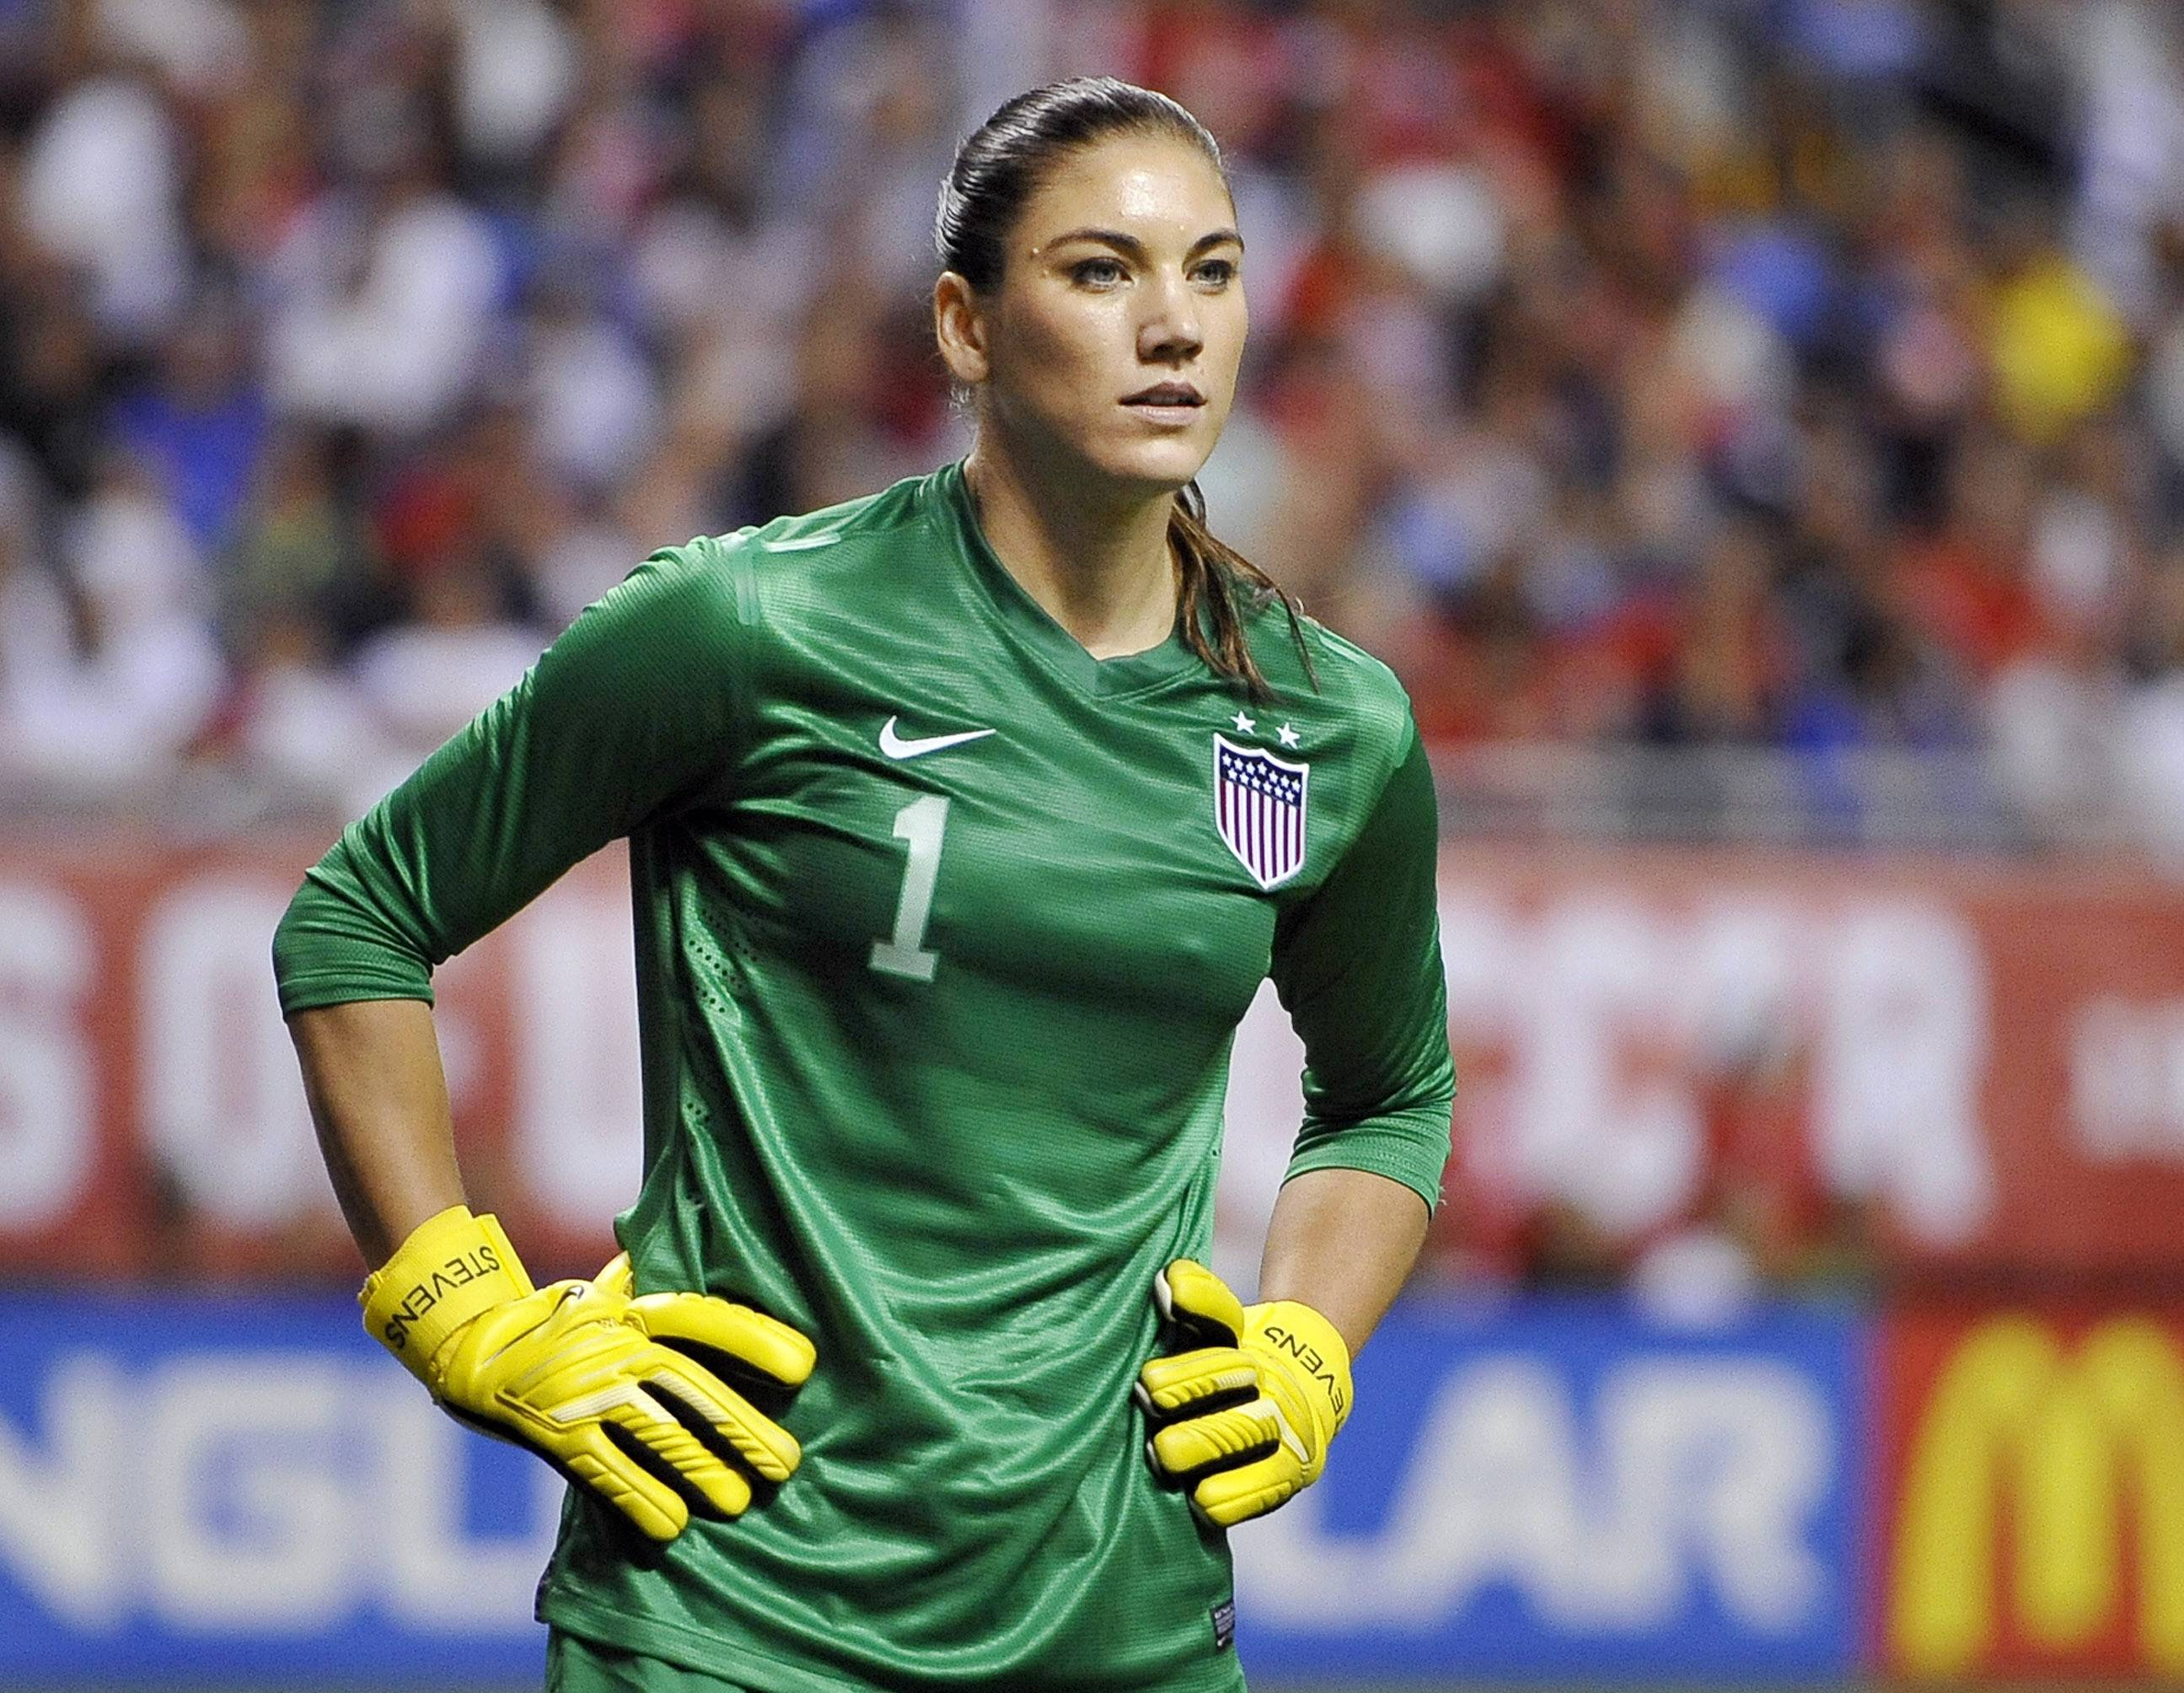 In this Oct. 20, 2013, file photo, United States goalkeeper Hope Solo, shown here in 2013, was arrested early Saturday morning at her suburban Seattle home, police said. She is accused of assaulting her sister and nephew.